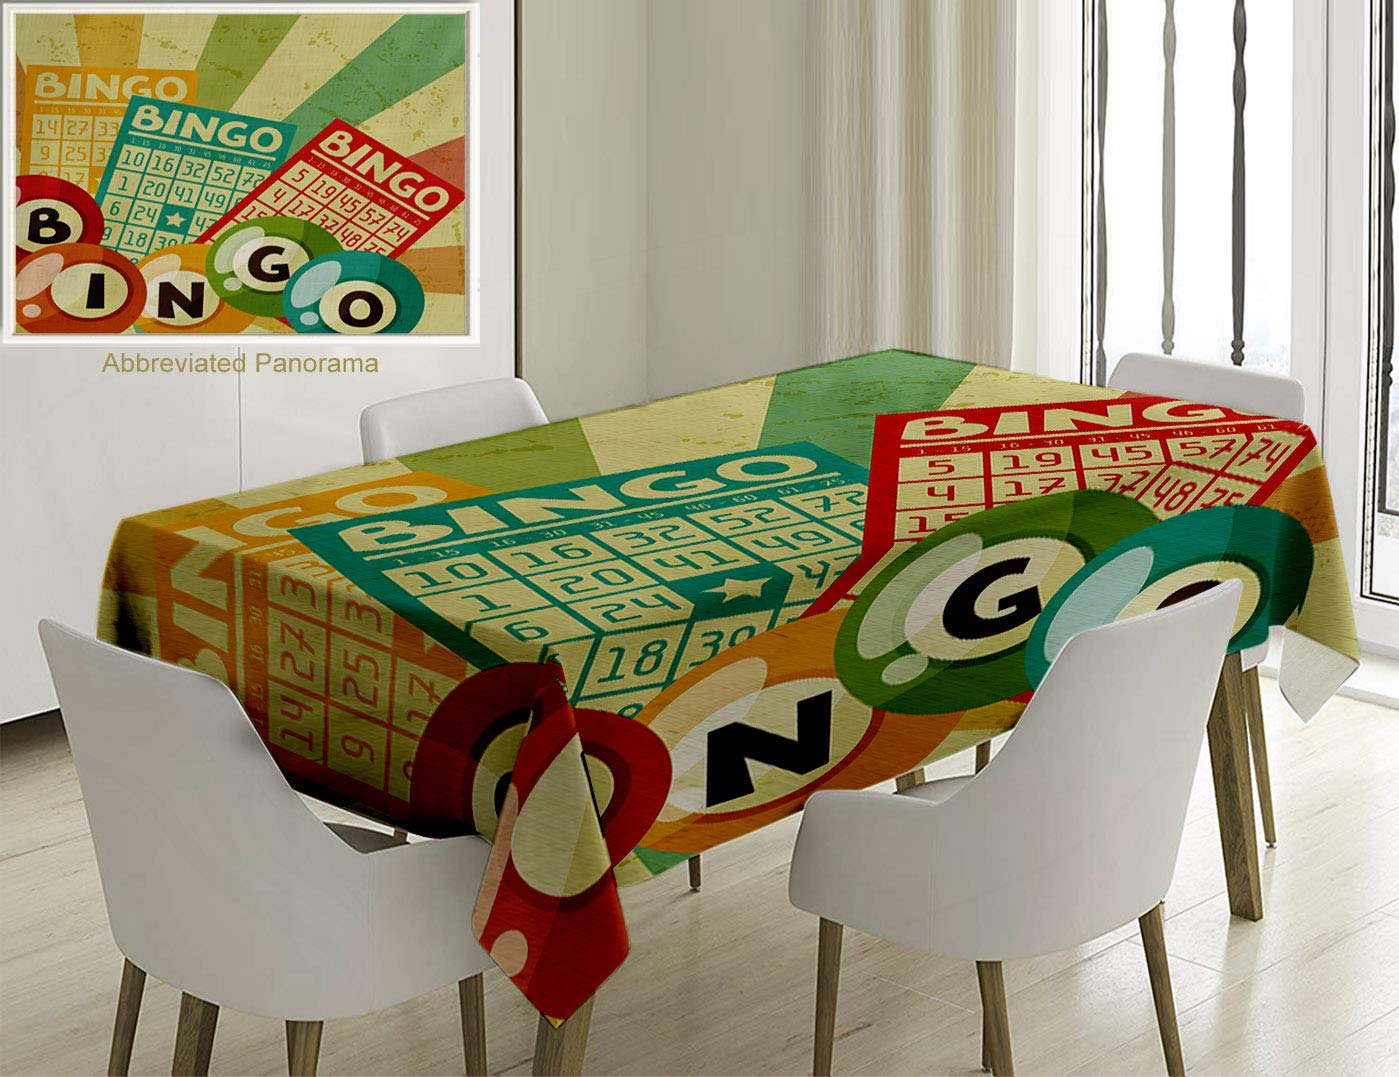 Unique Custom Cotton and Linen Blend Tablecloth Vintage Decor Bingo Game with Ball and Cards Pop Art Stylized Lottery Hobby Celebration ThemeTablecovers for Rectangle Tables, 70 x 52 inches by Nalagoo